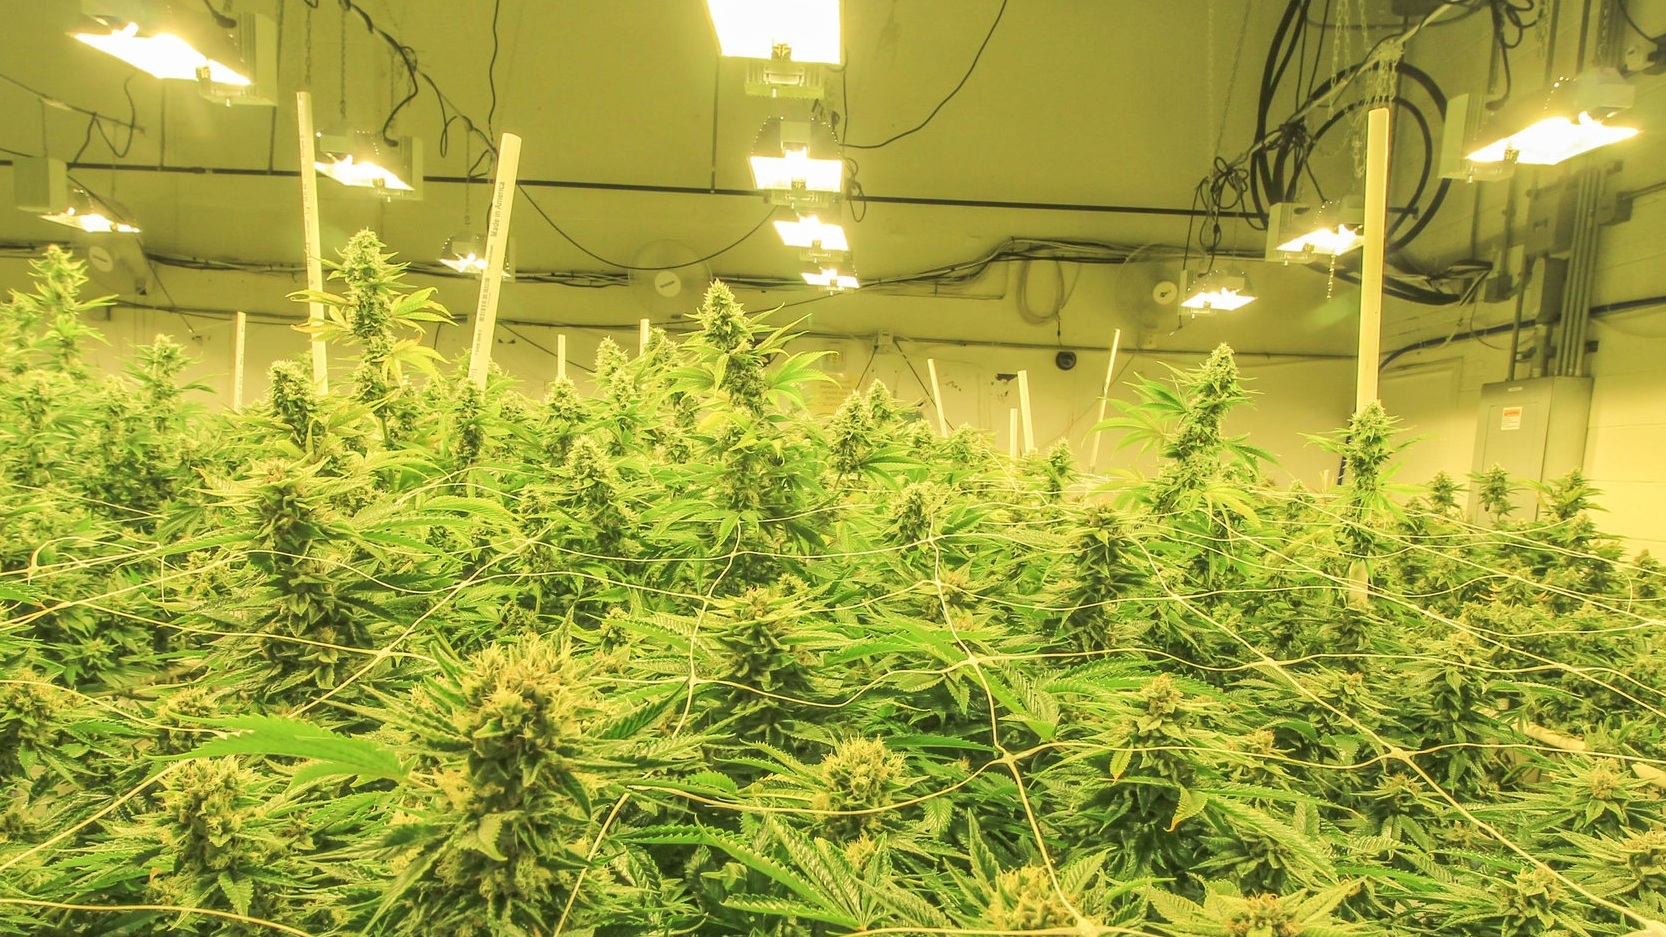 #1 Director Of Cultivation - Average national salary range for qualified professionals: $88,000 to $250,500